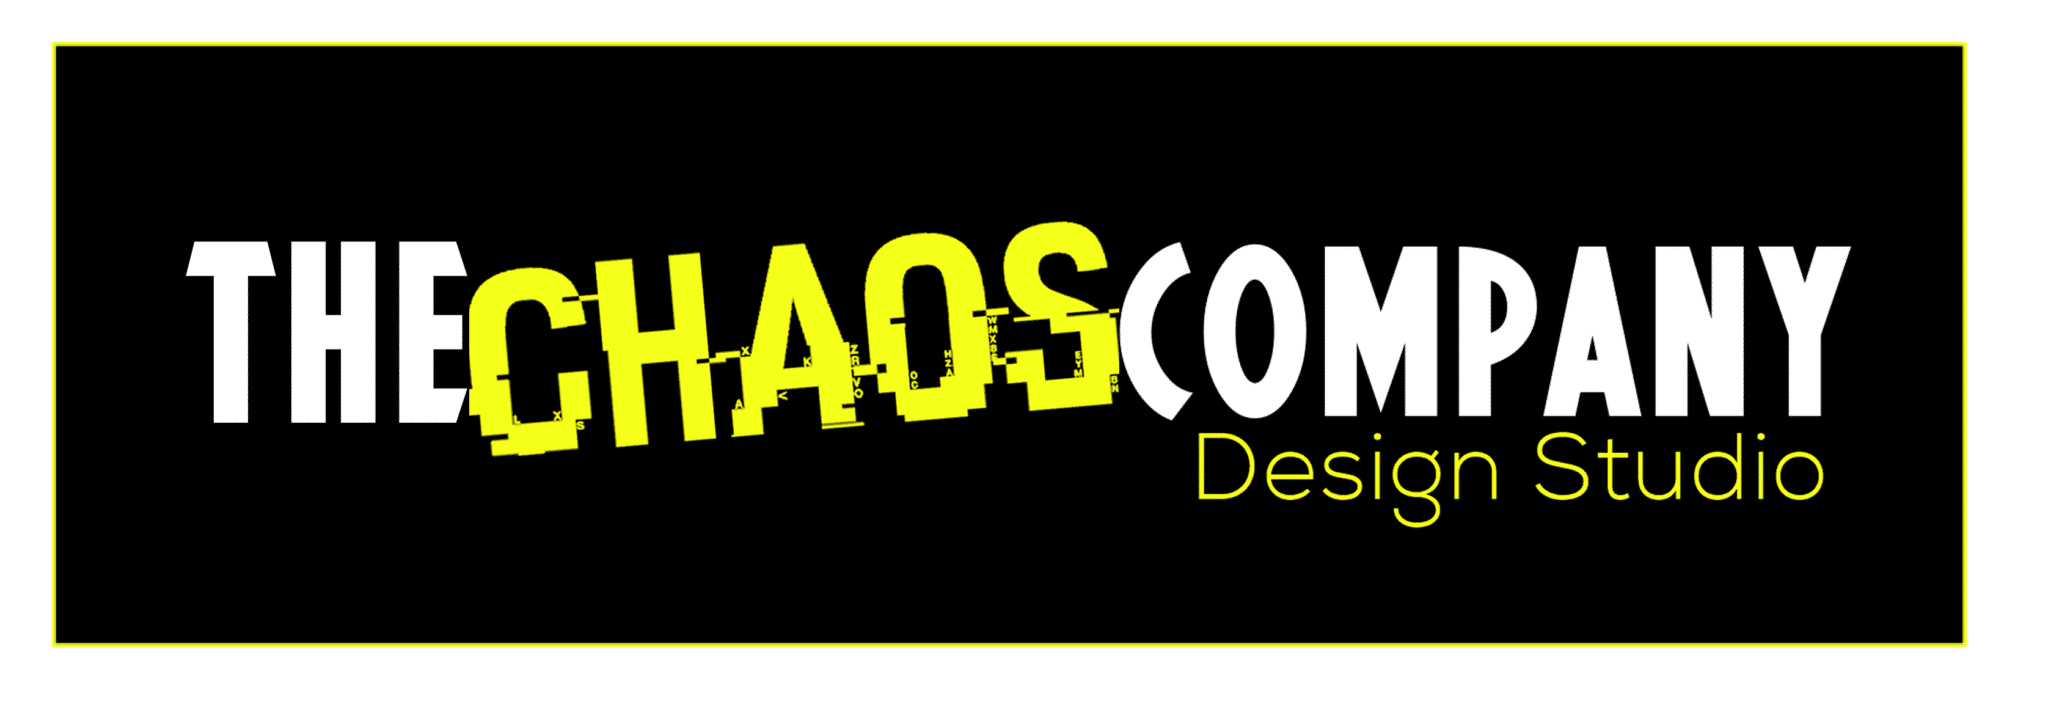 Banner designed by The Chaos Company